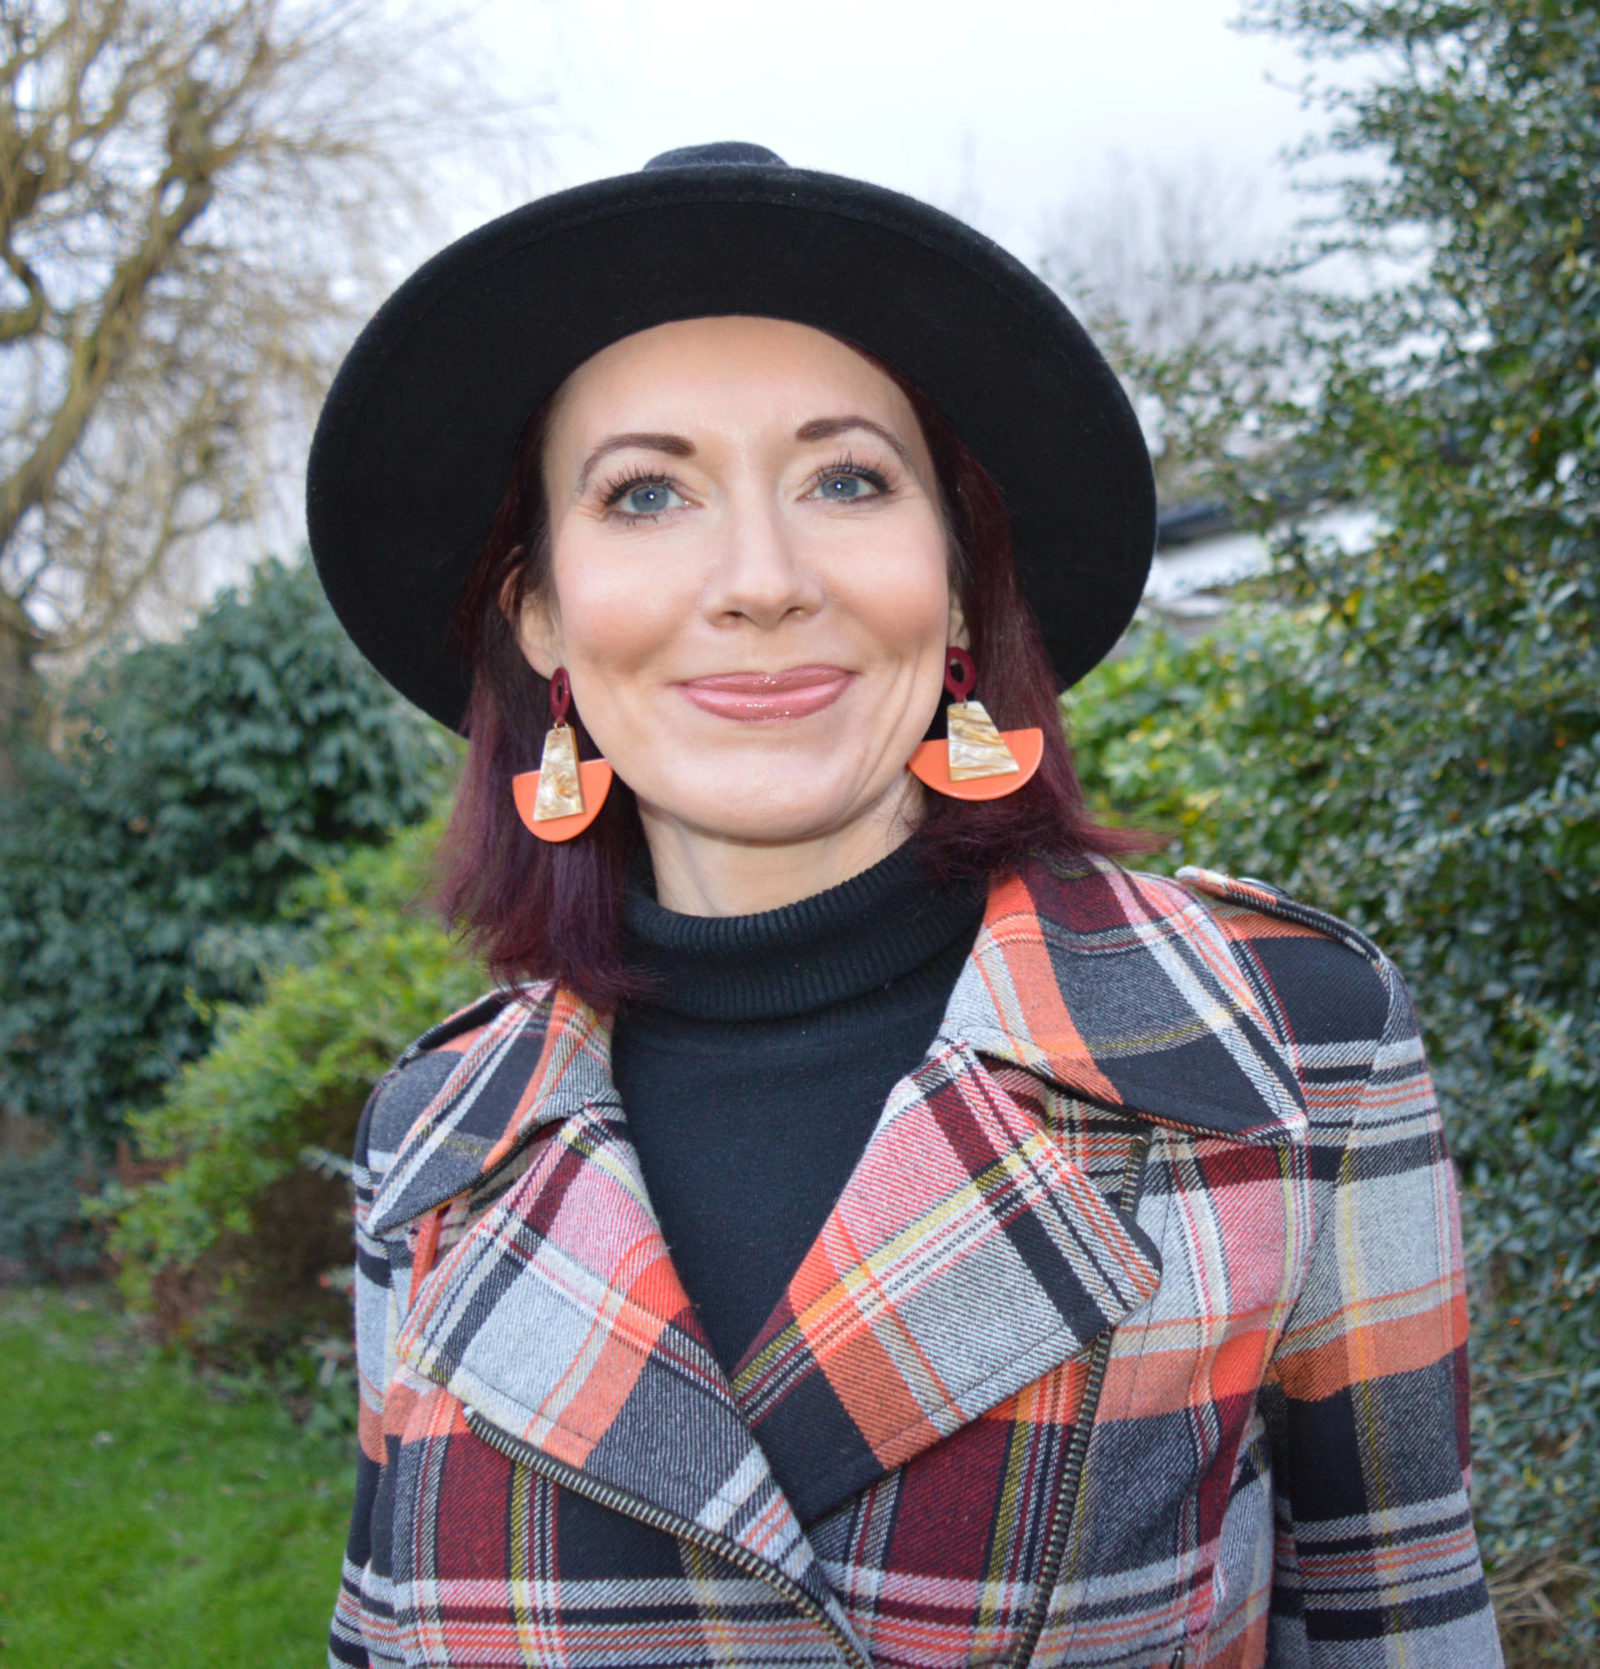 French Connection Tartan jacket, Mango orange resin earrings